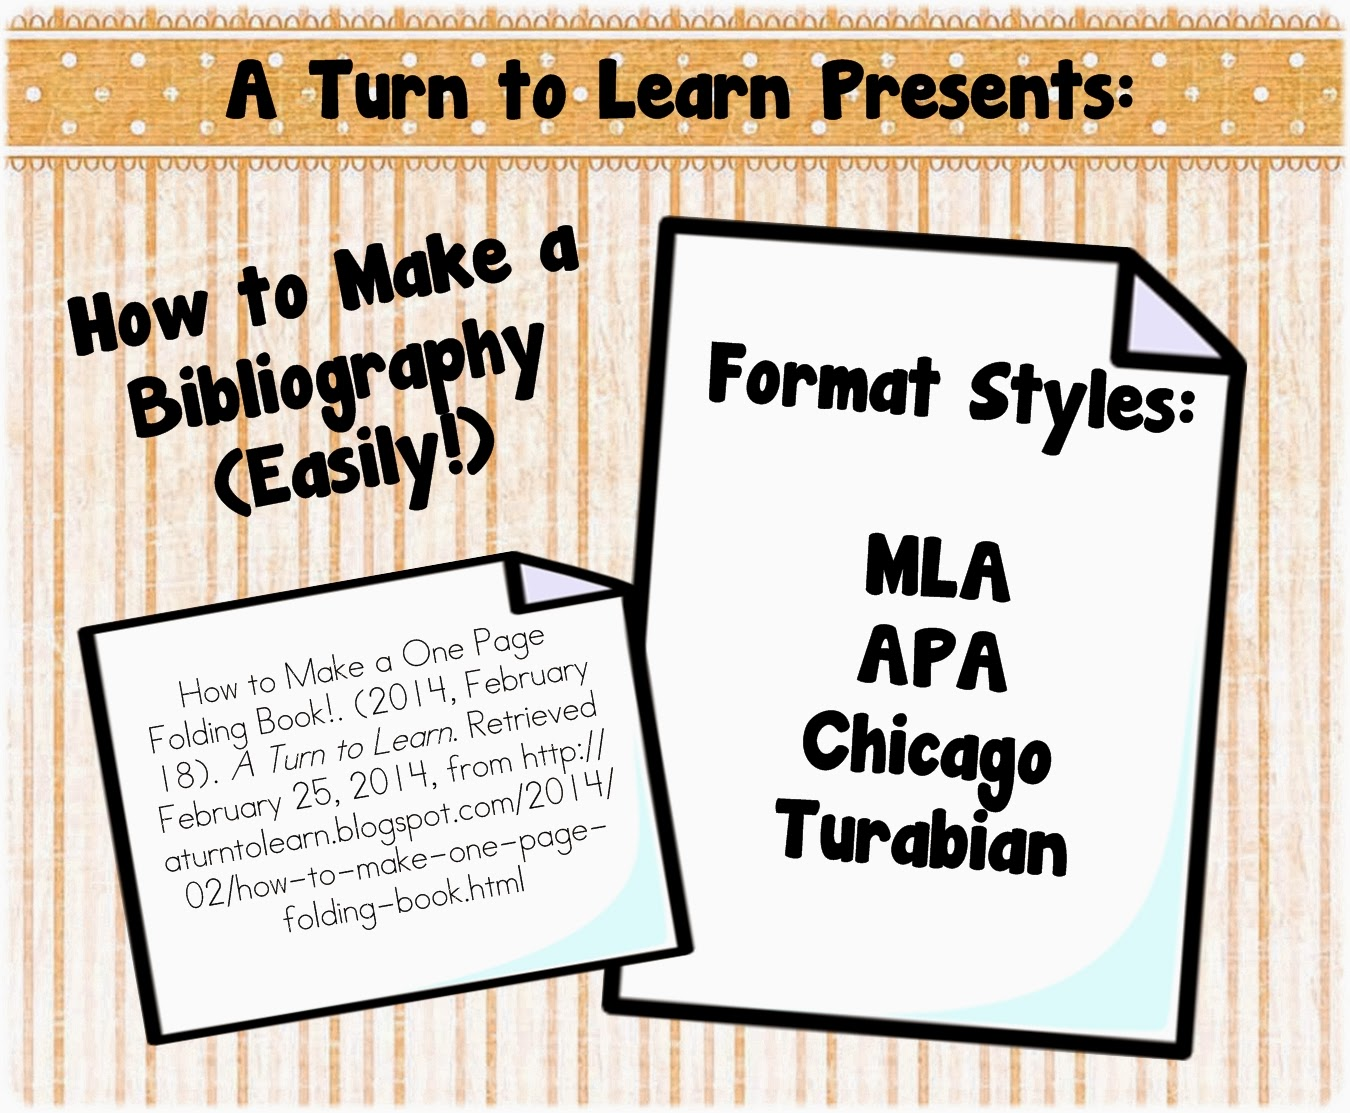 http://aturntolearn.blogspot.com/2014/02/how-to-make-bibliography-easily.html